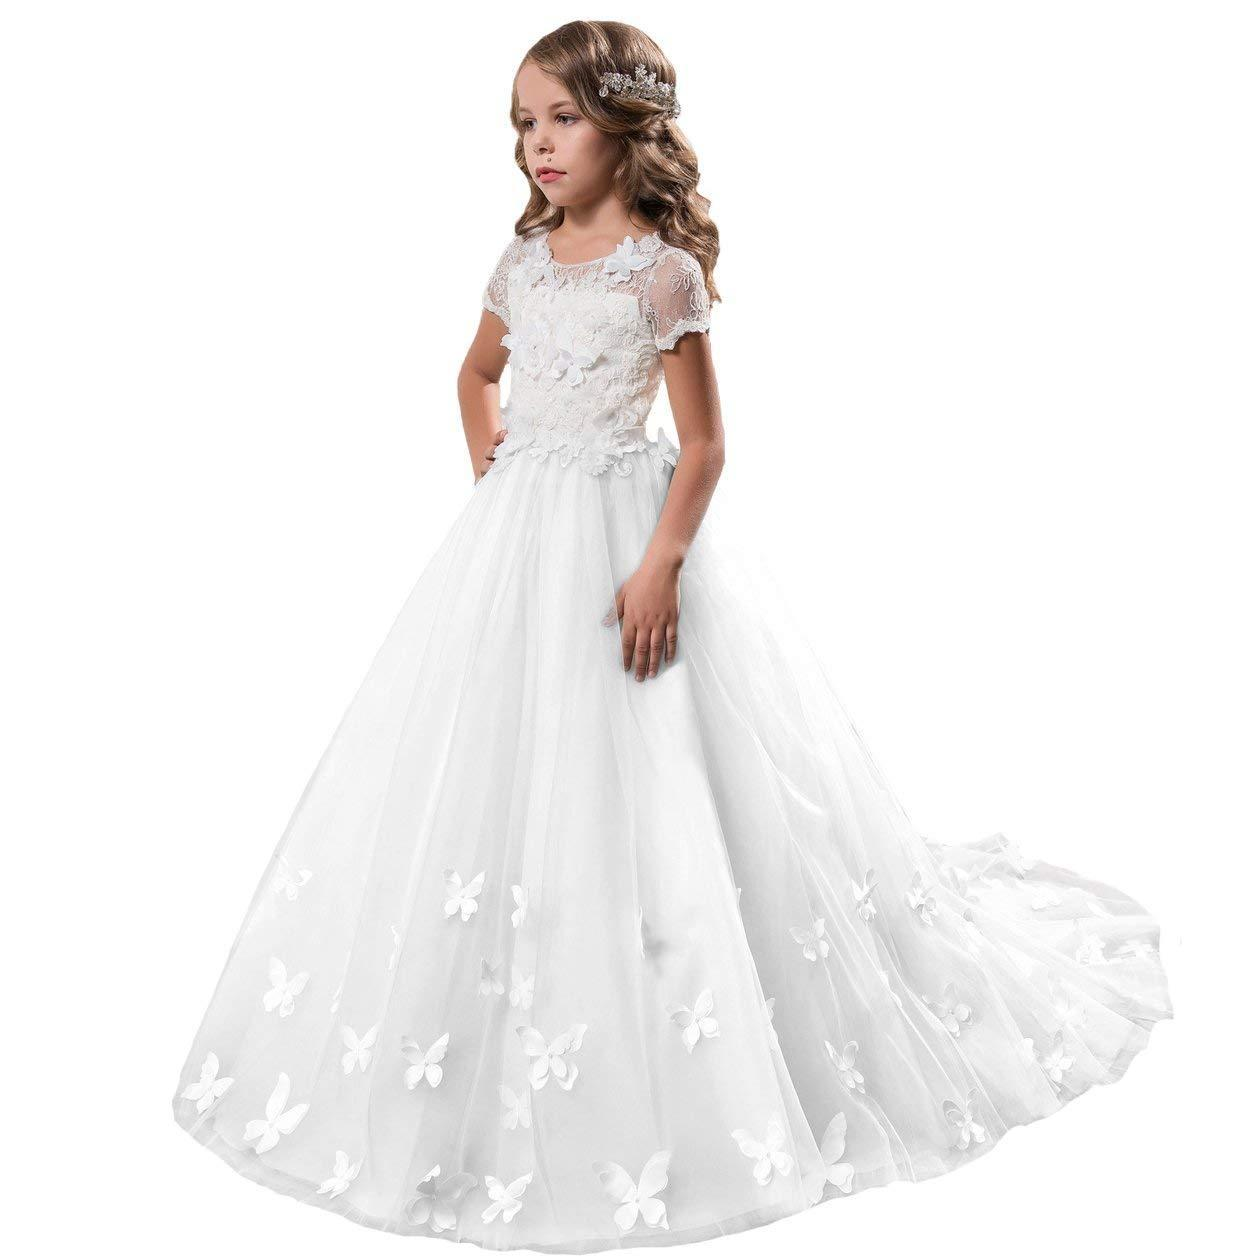 74353239595 Flower Girl Dress Brithday Dress Party Fancy Girls Pageant Mint Blue Dresses  0 14 Year Old Formal Cheap Ivory Flower Girl Dresses Couture Flower Girl ...